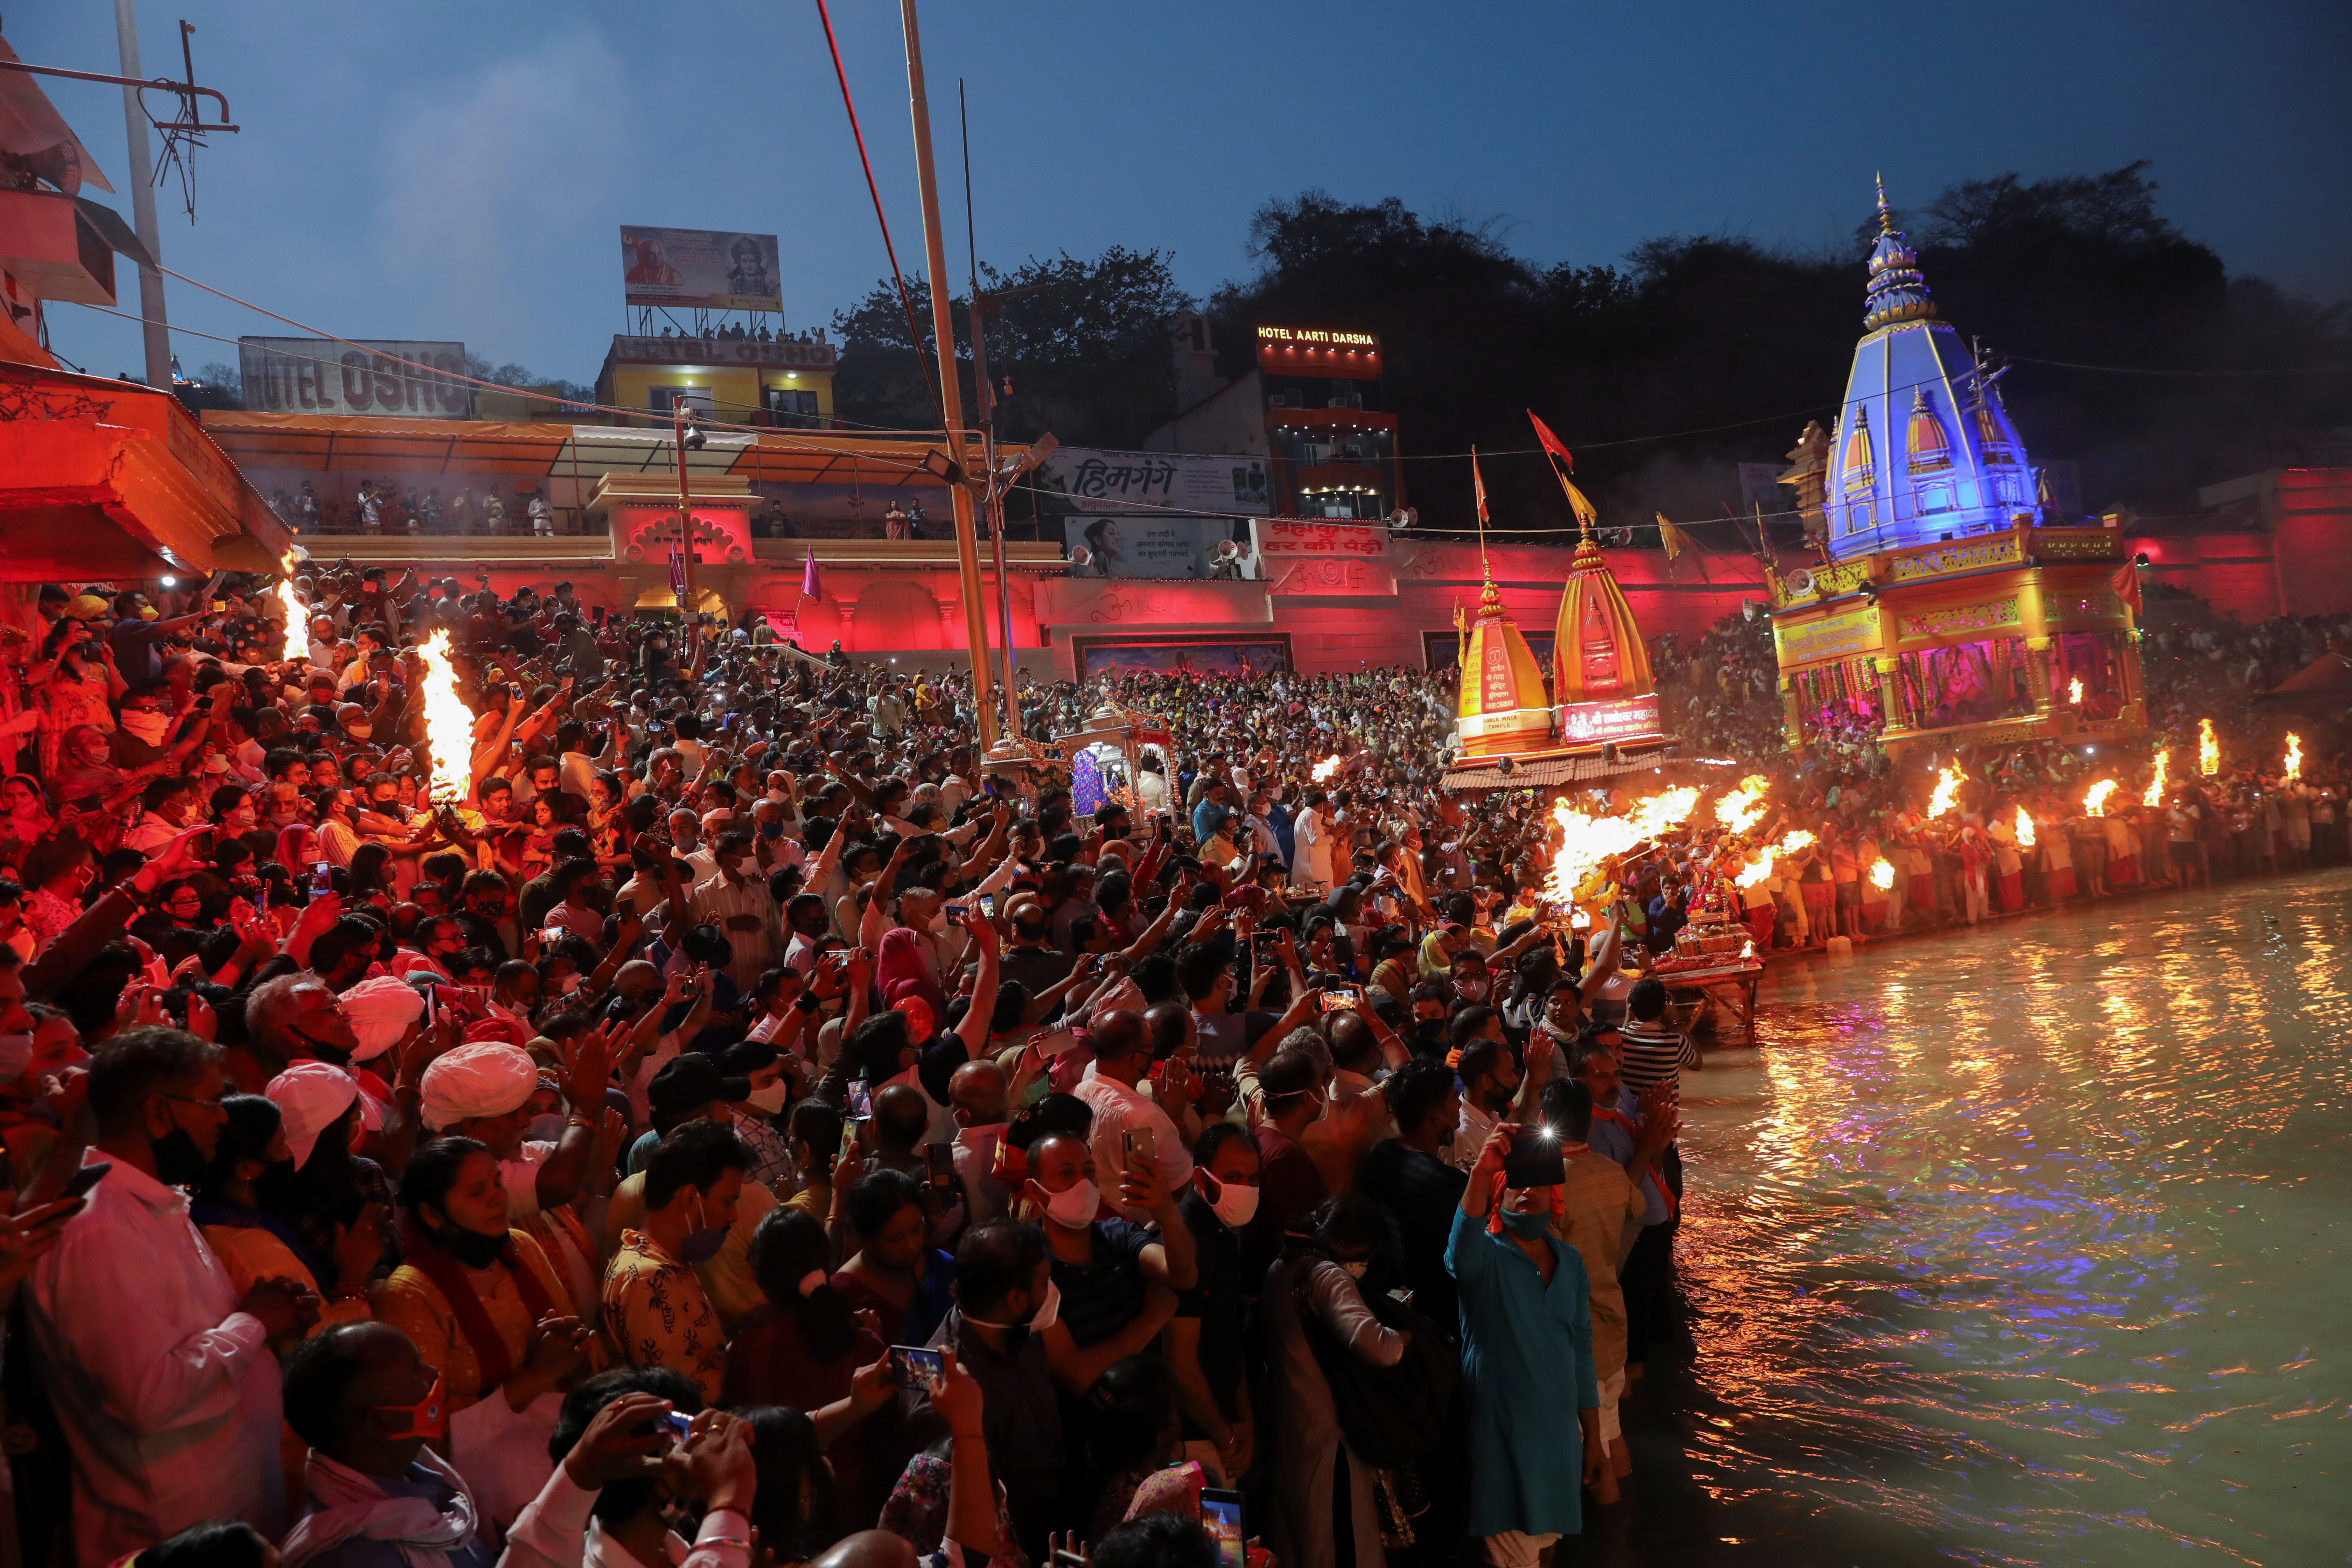 Devotees gather for an evening prayer on the banks of Ganges river during Kumbh Mela, or the Pitcher Festival, amidst the spread of the coronavirus disease (COVID-19), in Haridwar, India, April 11, 2021. REUTERS/Anushree Fadnavis